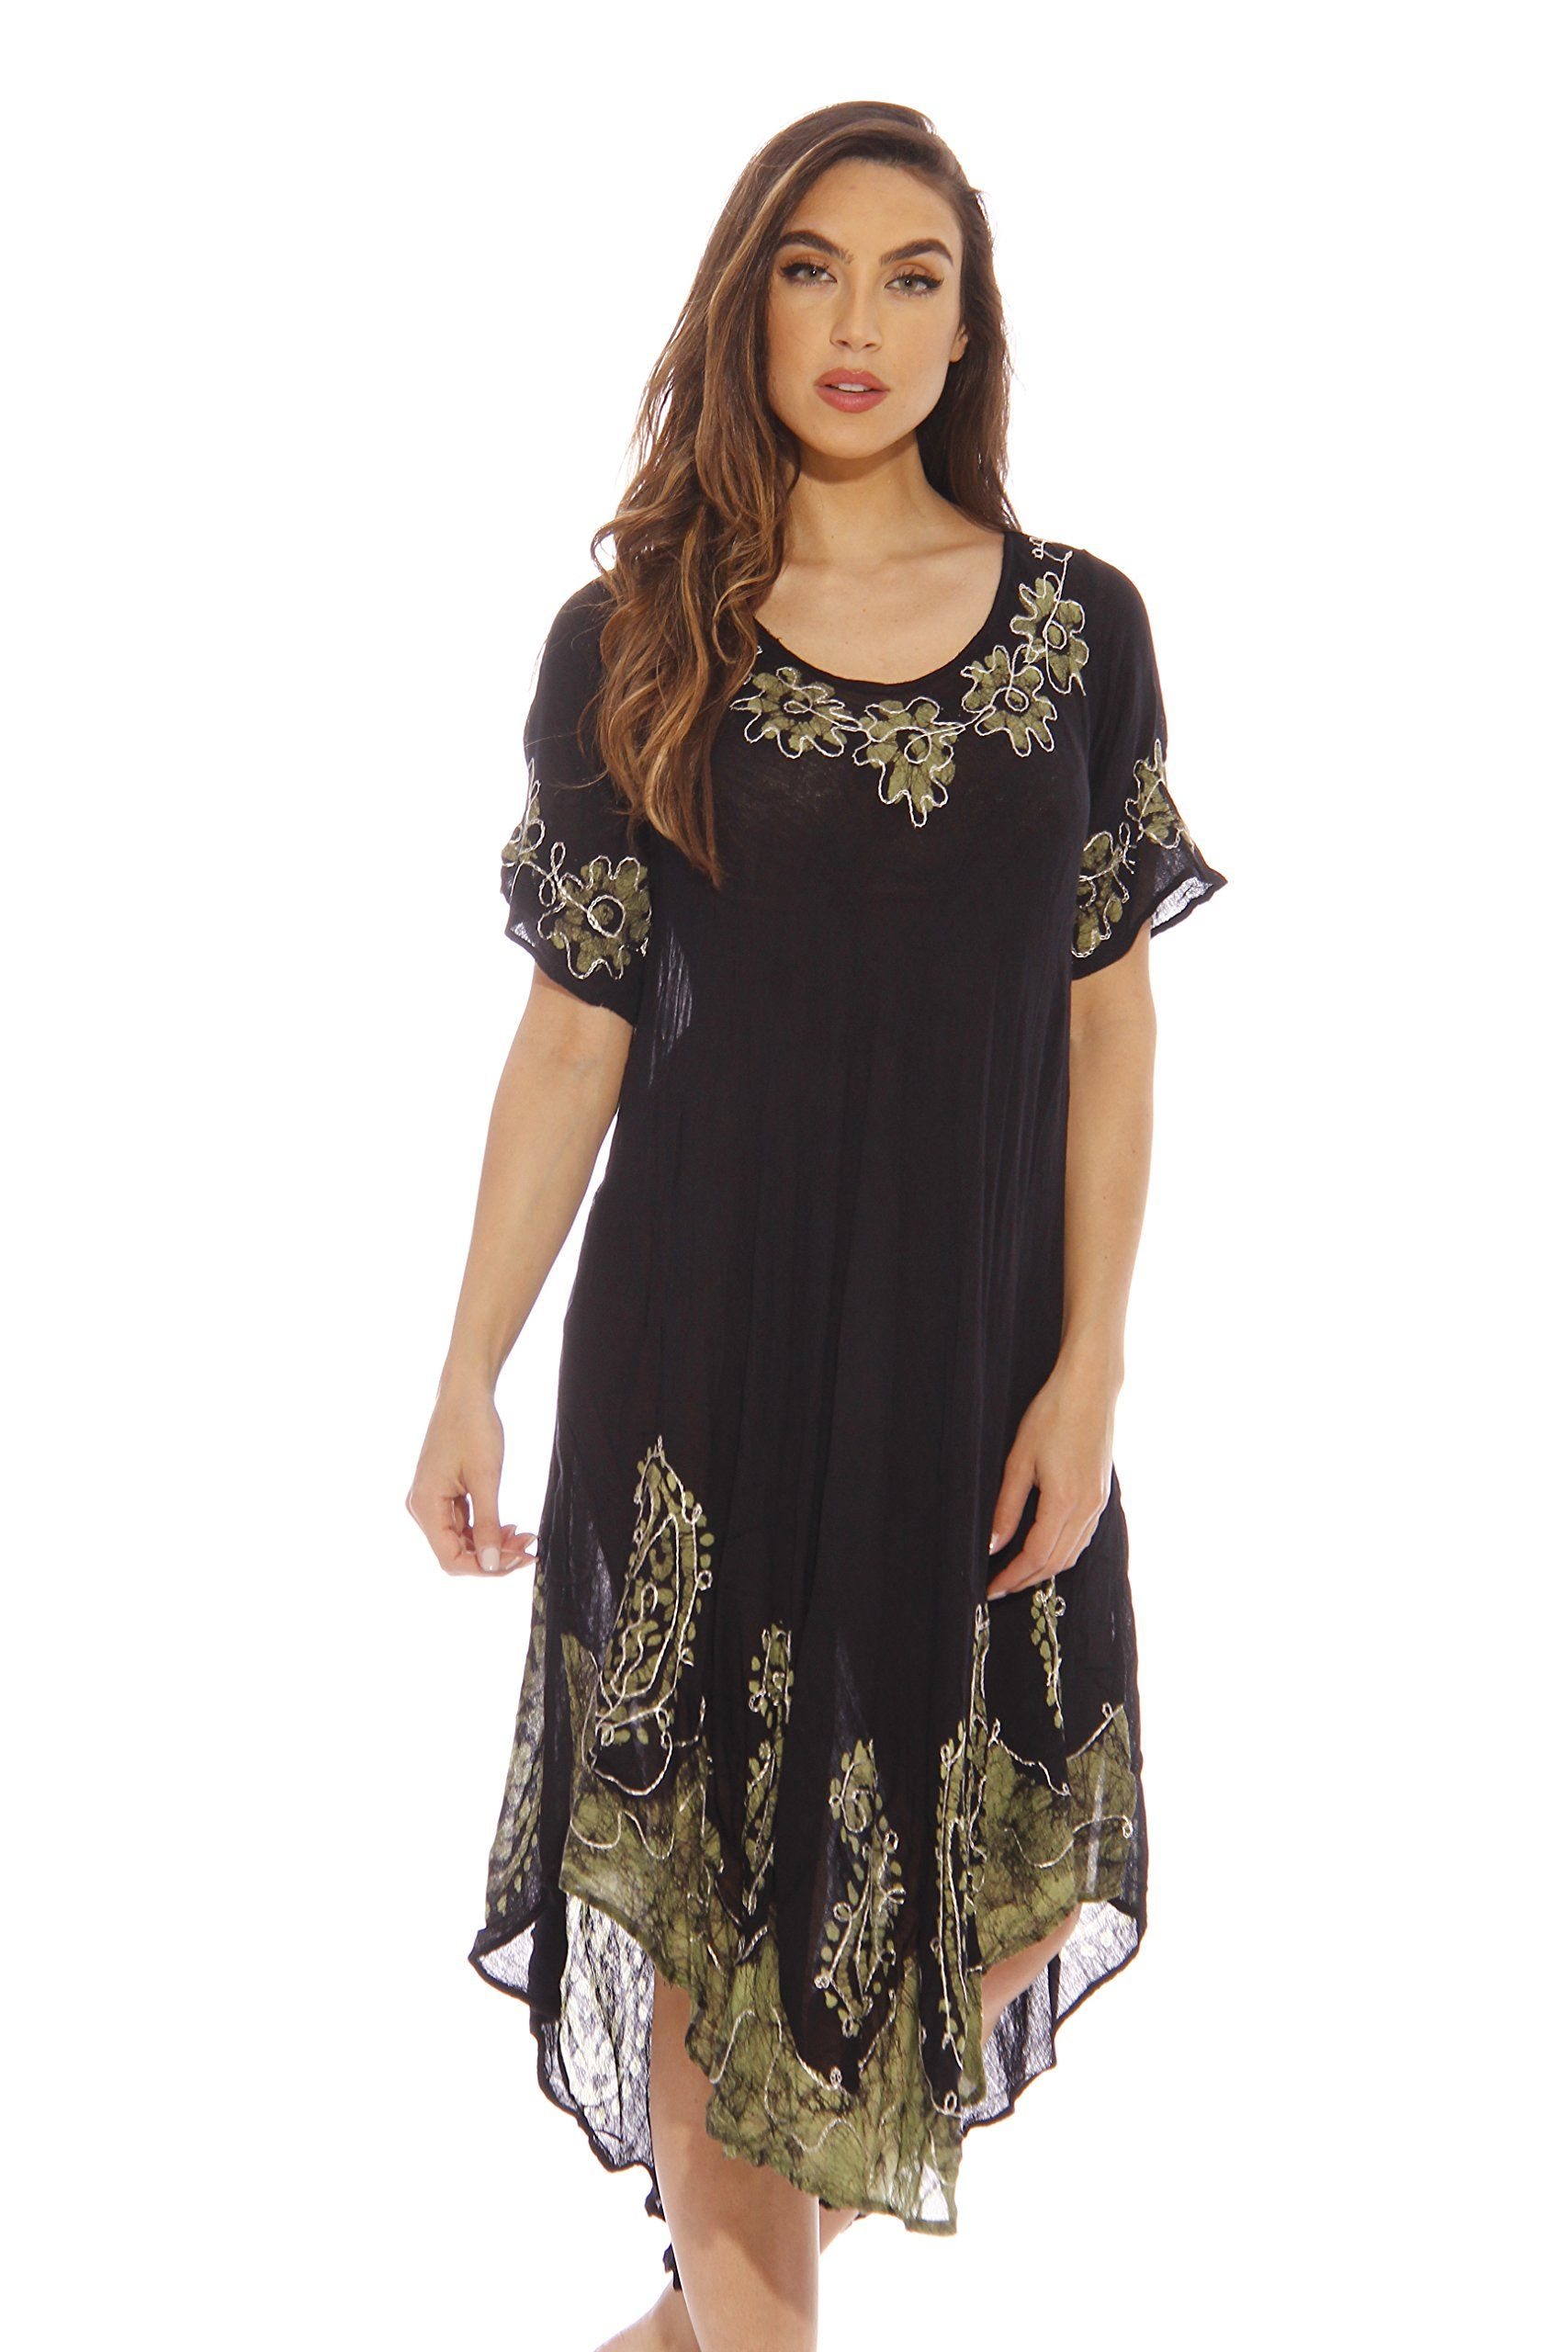 260071f97f Just Love Summer Dresses Plus Size   Swimsuit Cover Up   Resort Wear ...